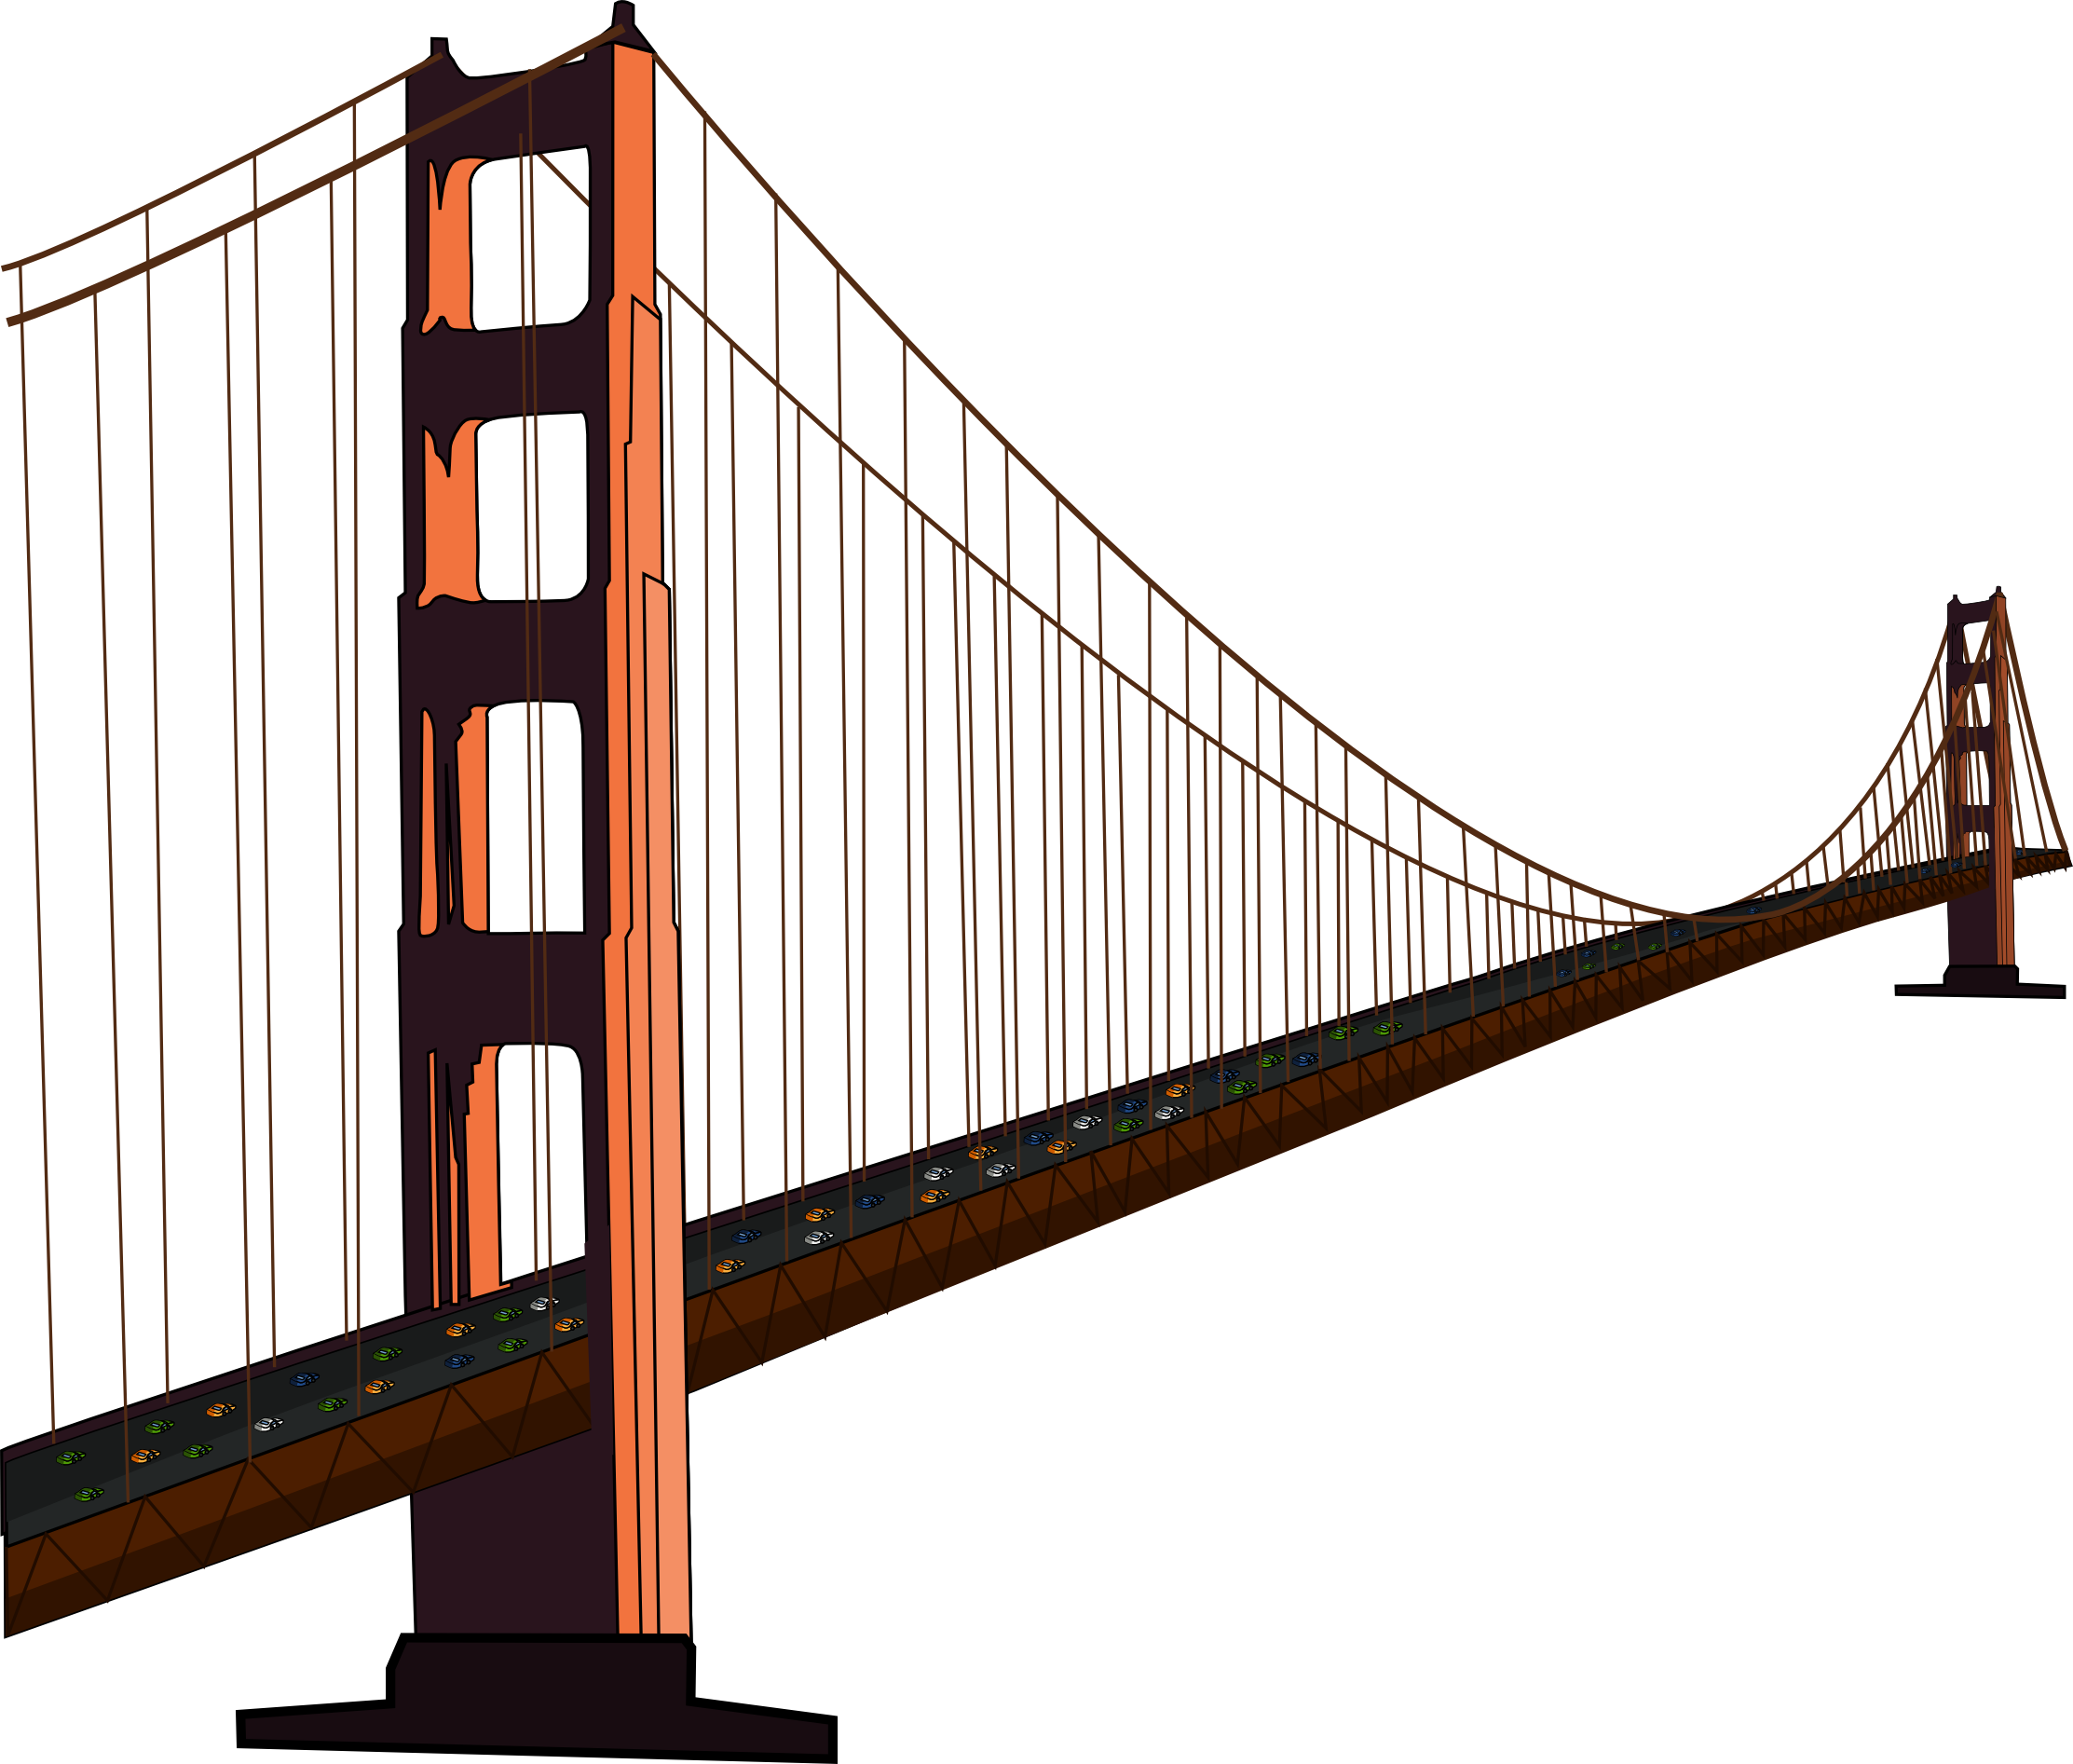 Golden gate bridge icon png